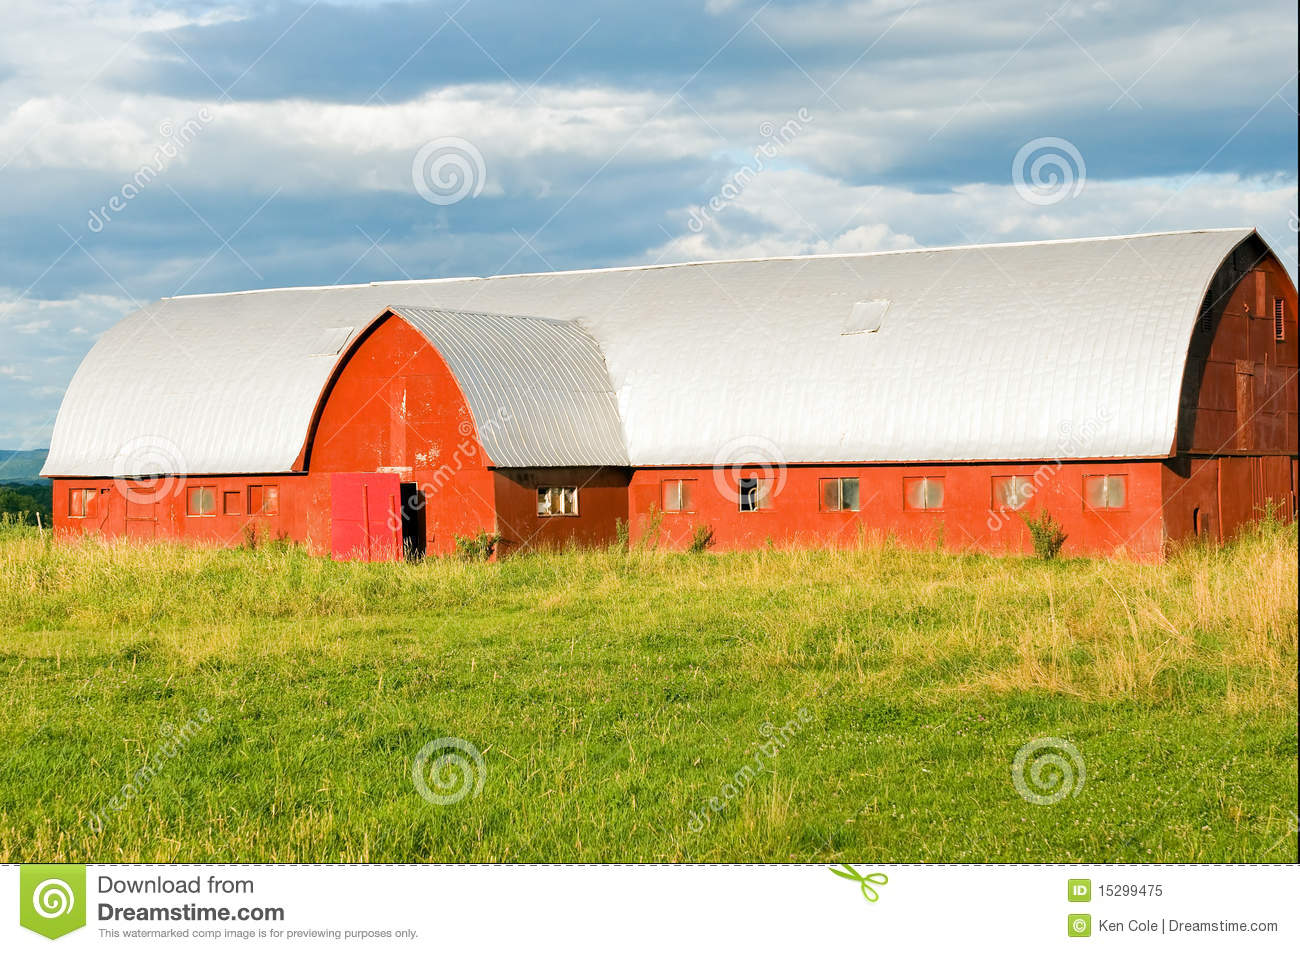 Vermont dairy barn stock image  Image of building, outdoor - 15299475